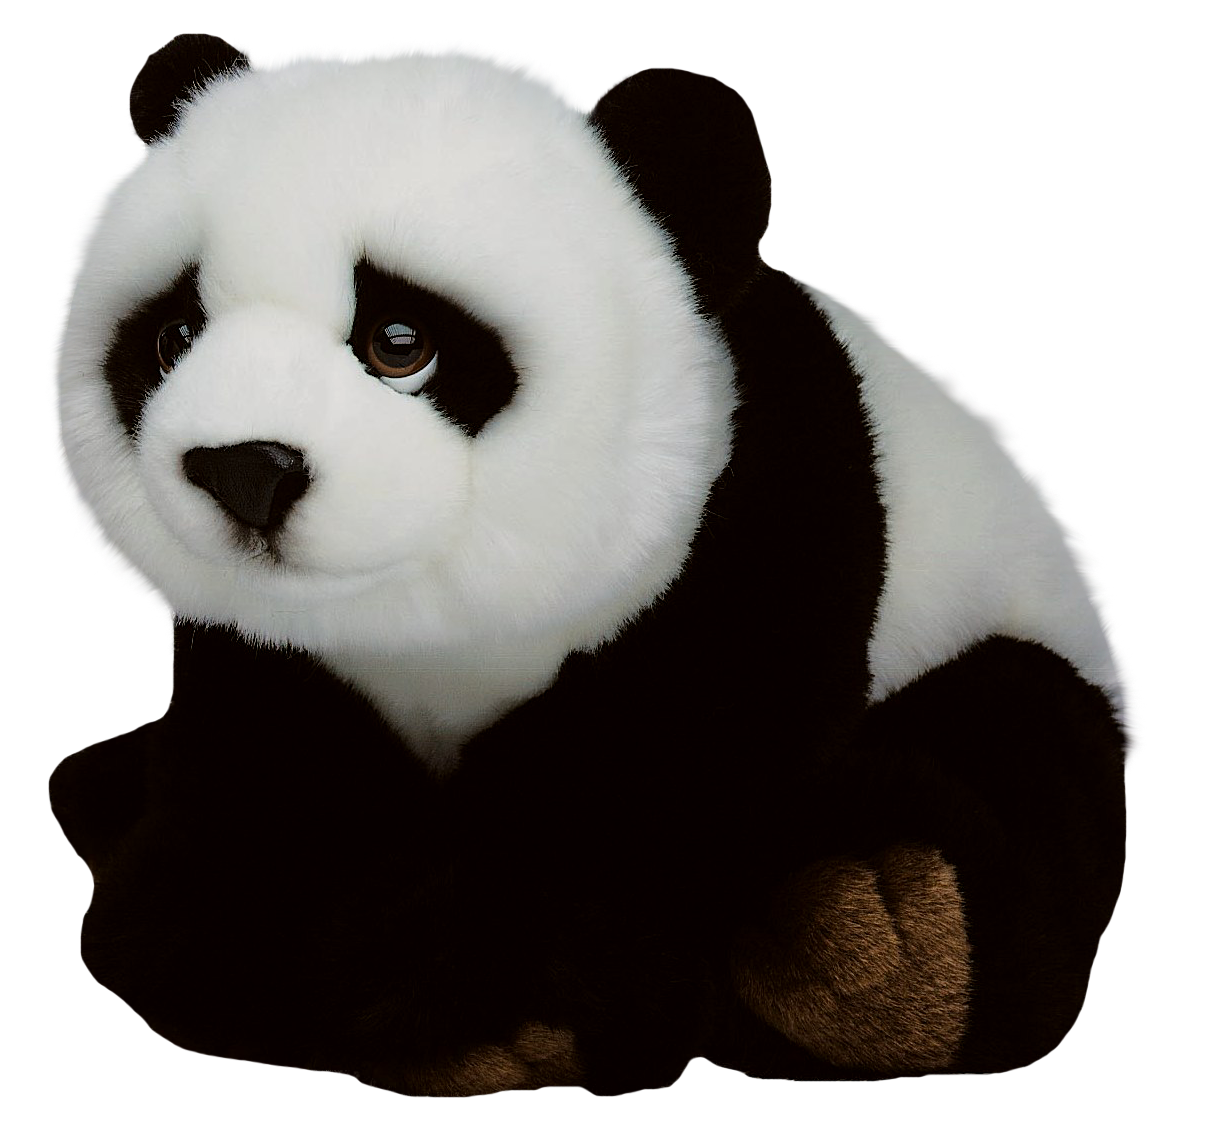 Giant panda png. Red vecteur transprent download